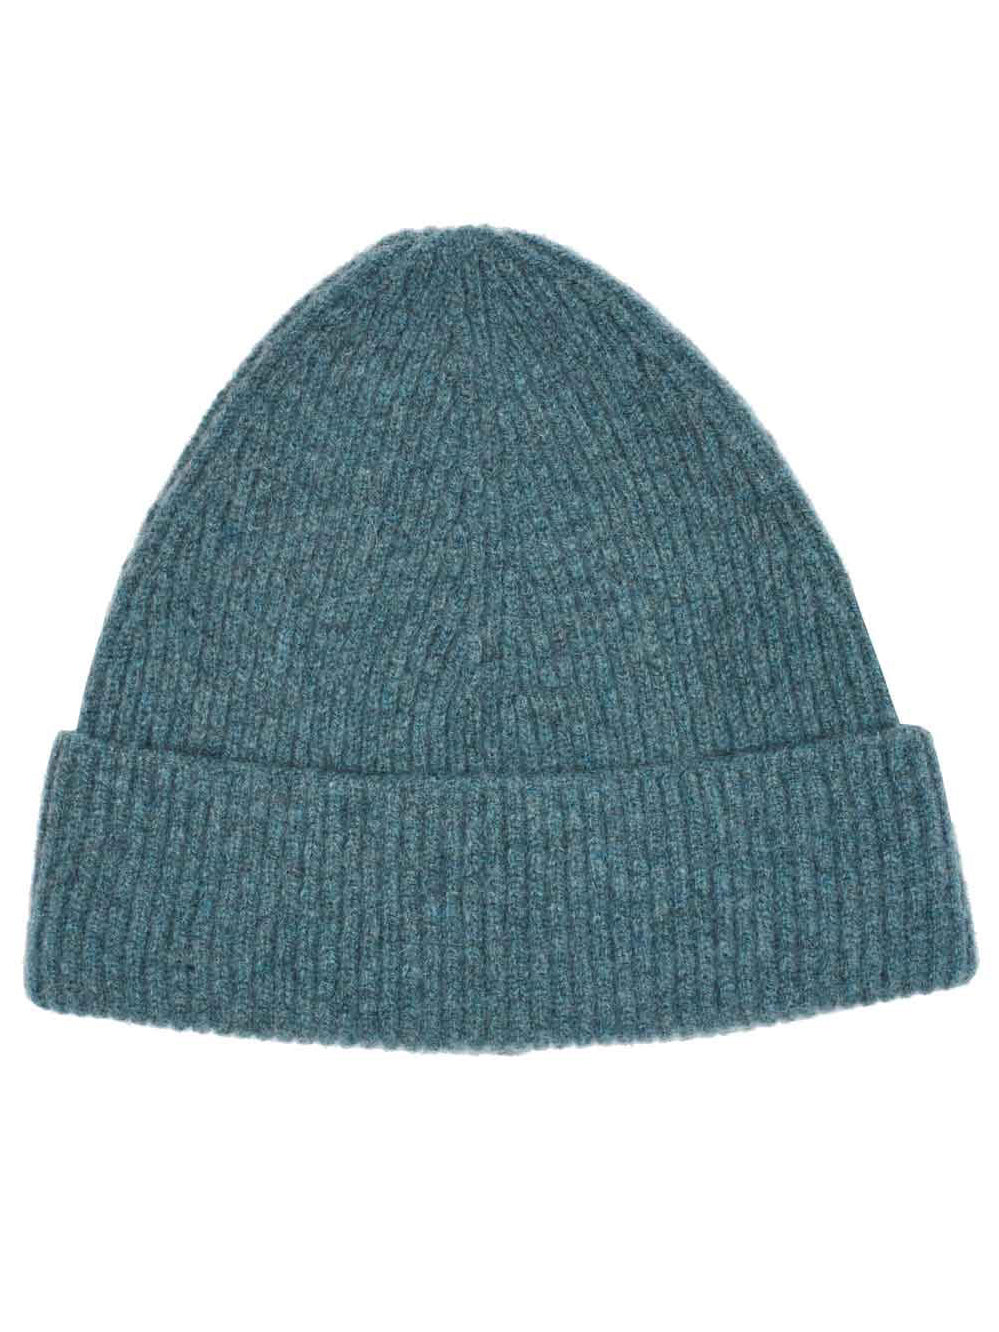 caspian green wool hat